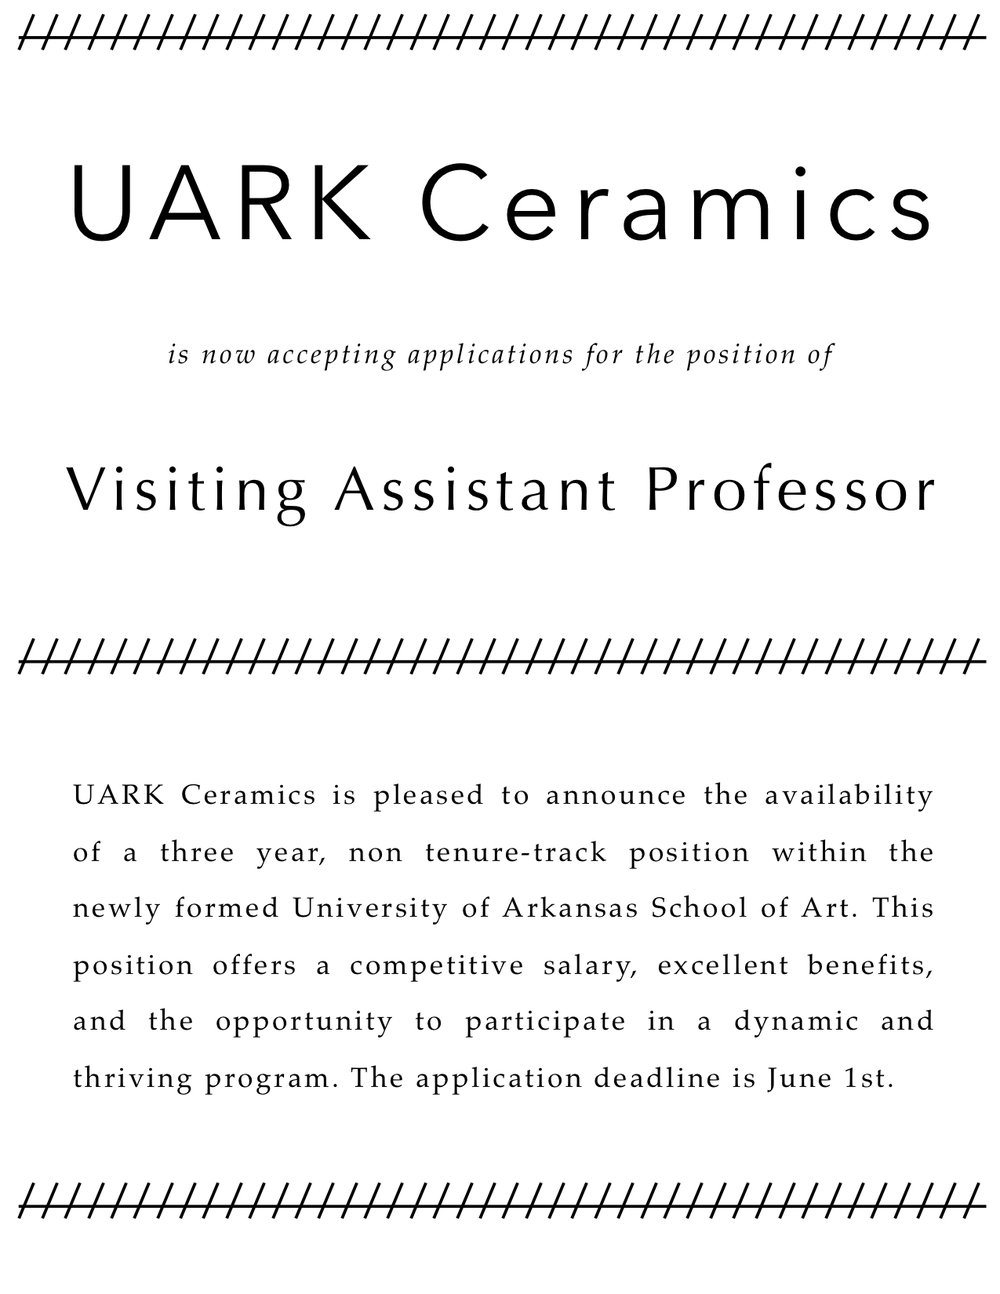 University of Arkansas Employment Opportunities | Visiting Assistant Professor 1